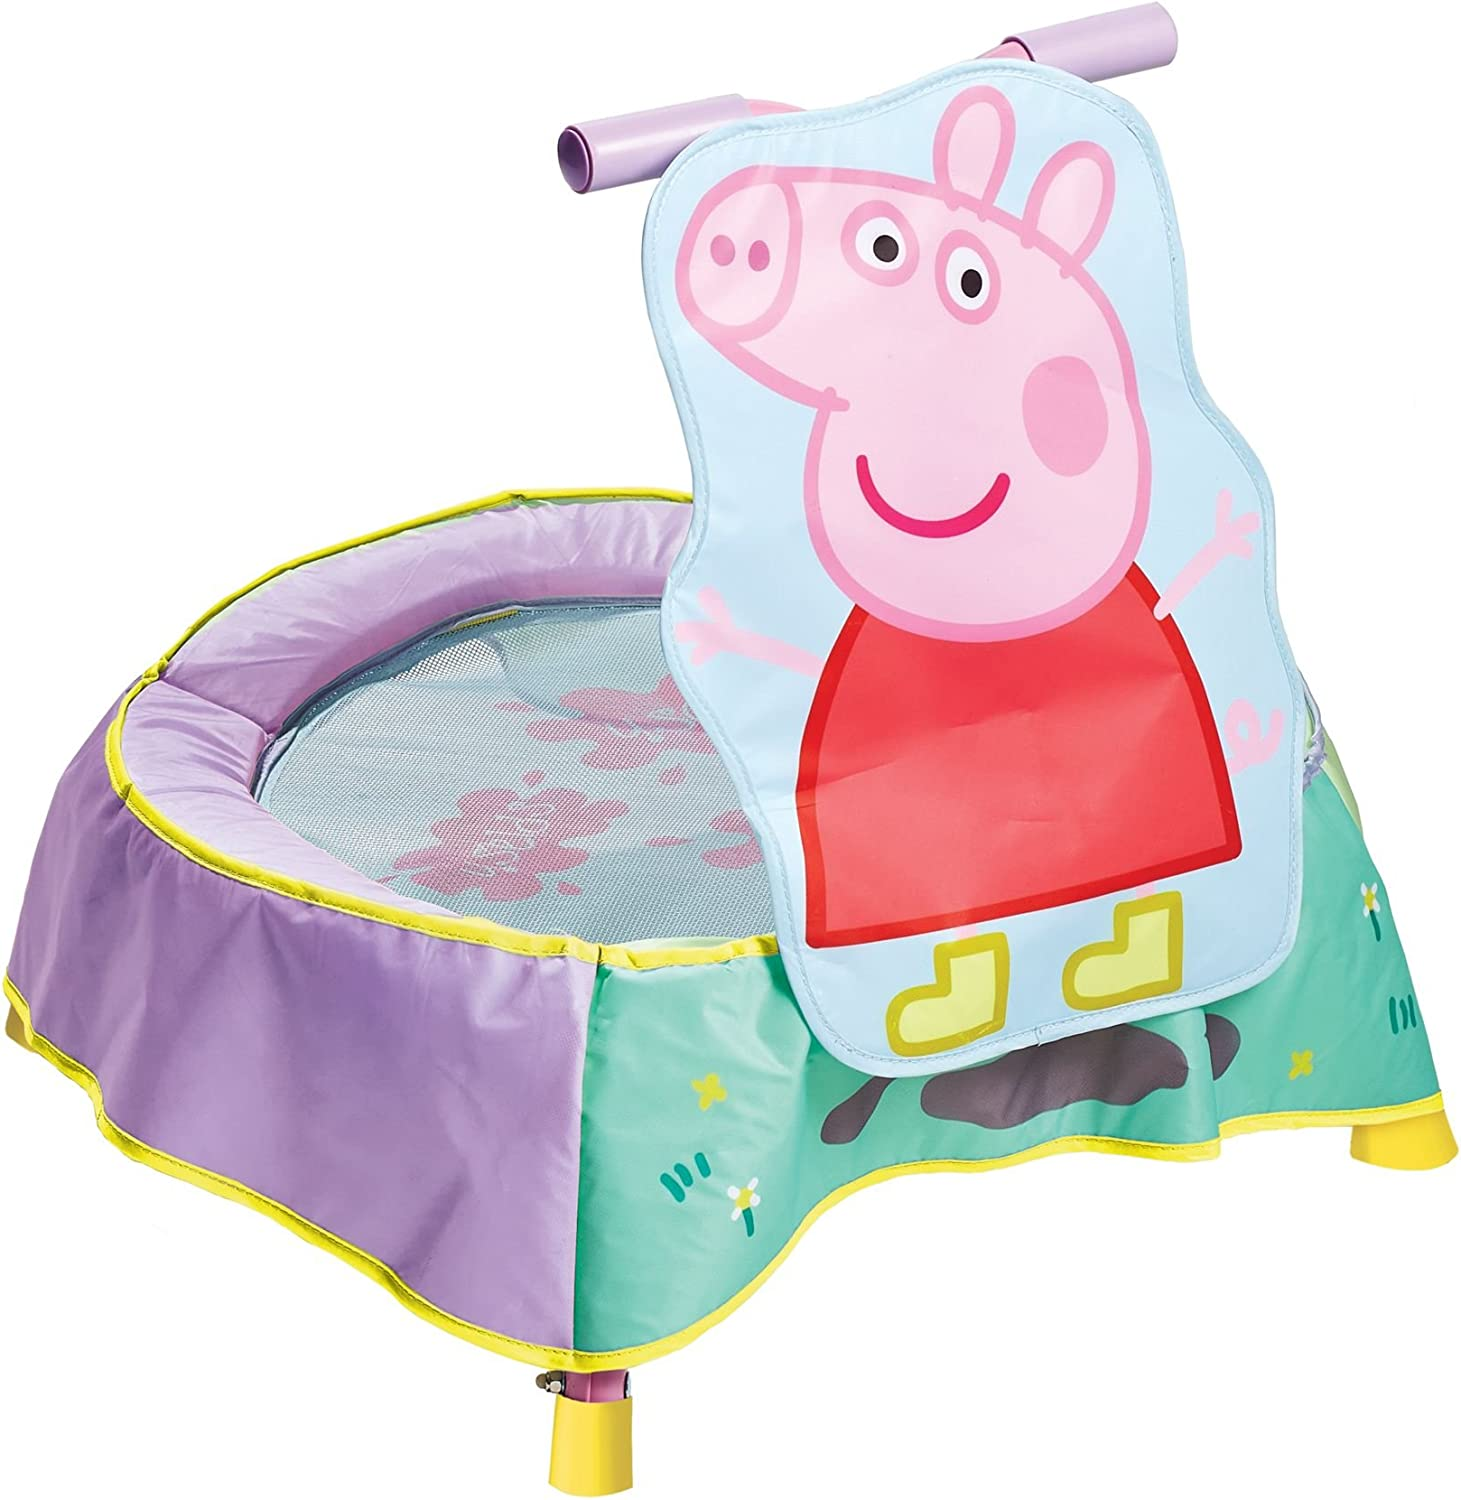 Kid Active Trampolín Infantil con diseño Peppa Pig (Worlds Apart 304PED)